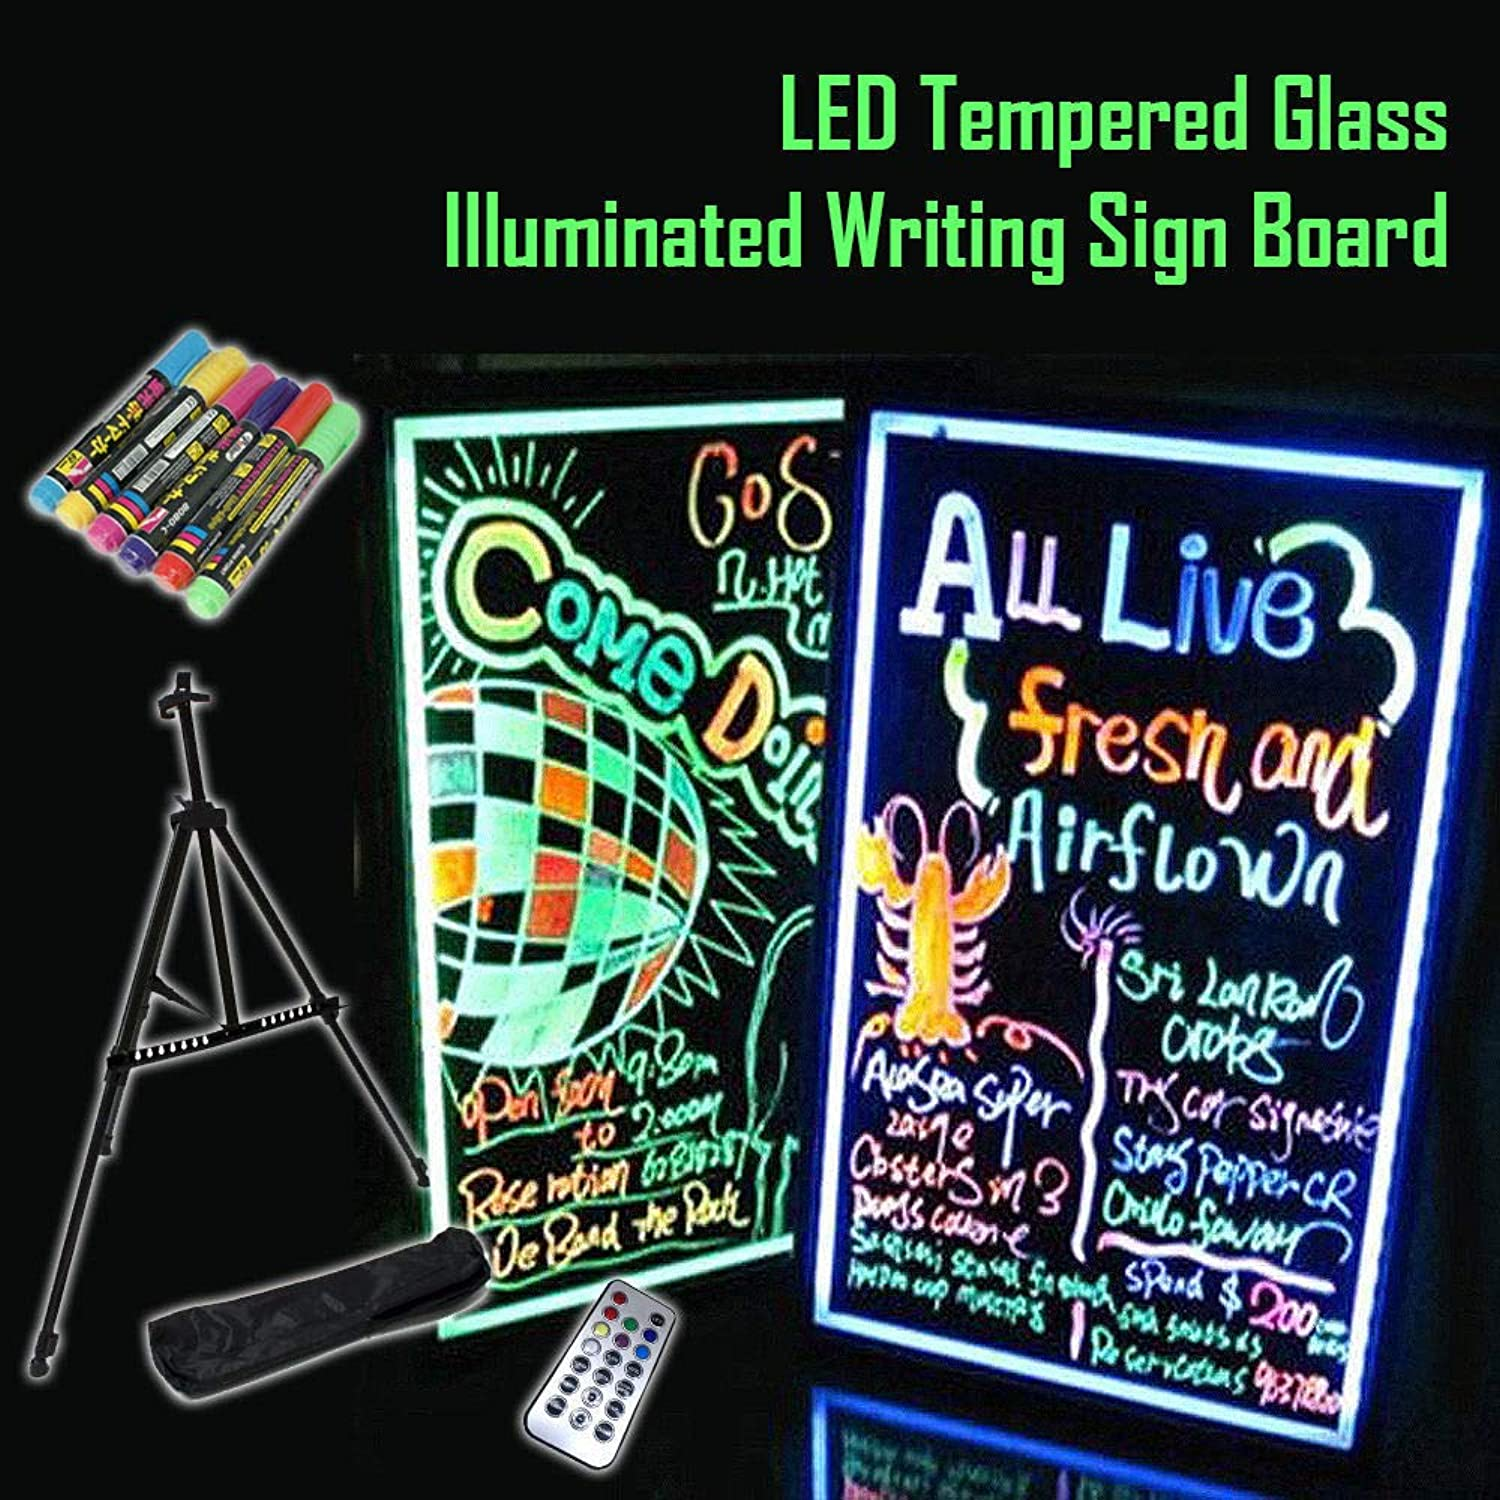 BCreative LED Tempered Glass Neon Illuminated Menu Sign Writing Board + Remote + Pens (40cm x 60cm   with TRIPOD)